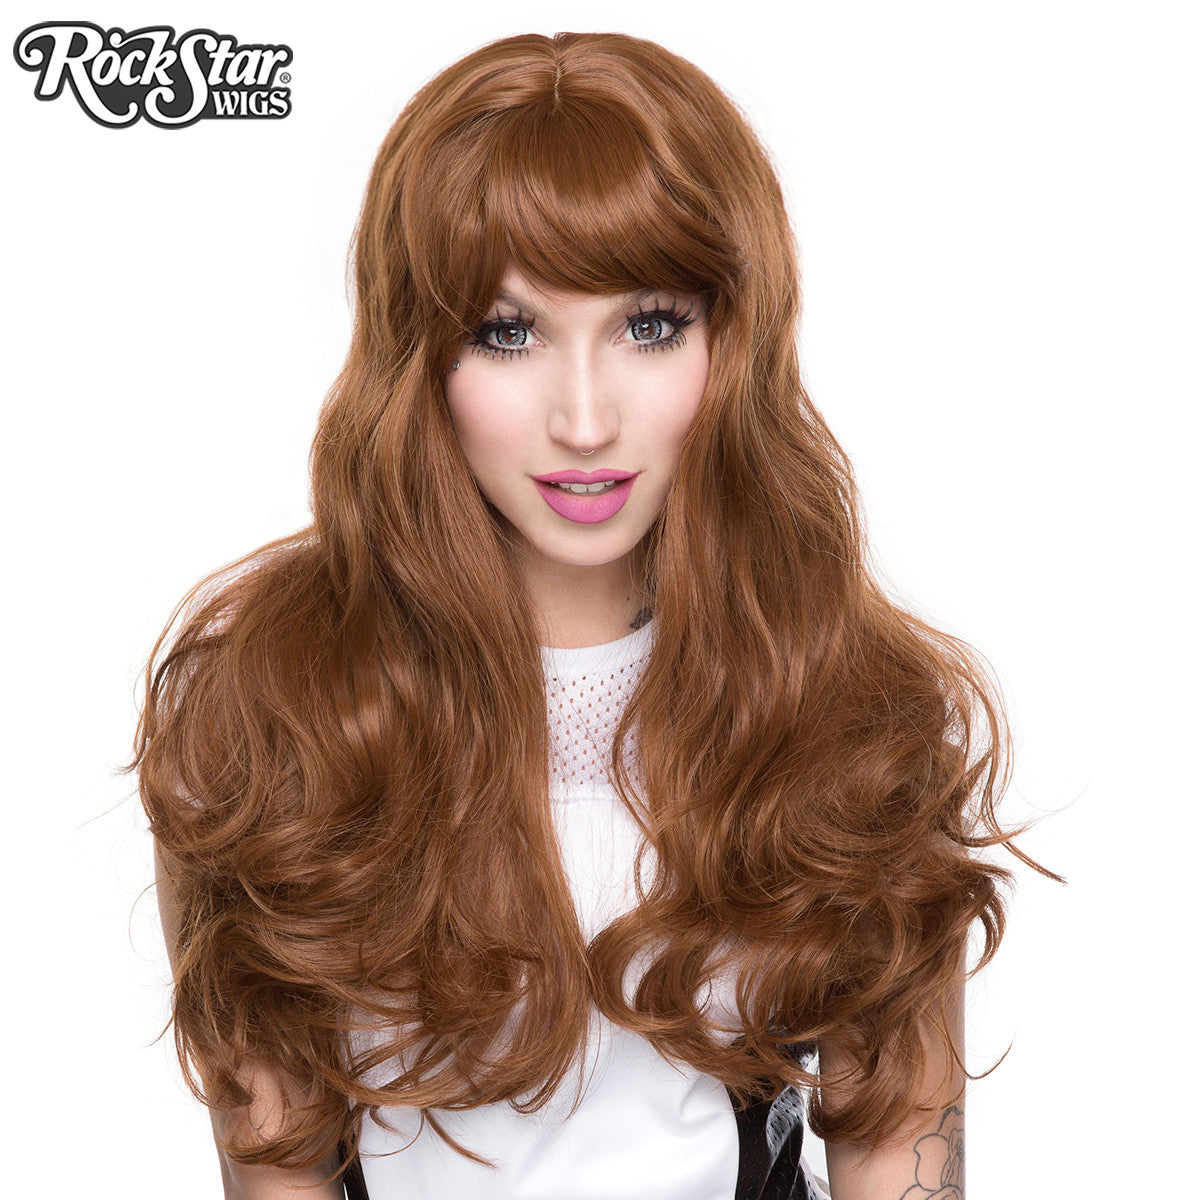 Gothic Lolita Wigs® Heartbreaker Collection - Chocolate Brown Mix ...